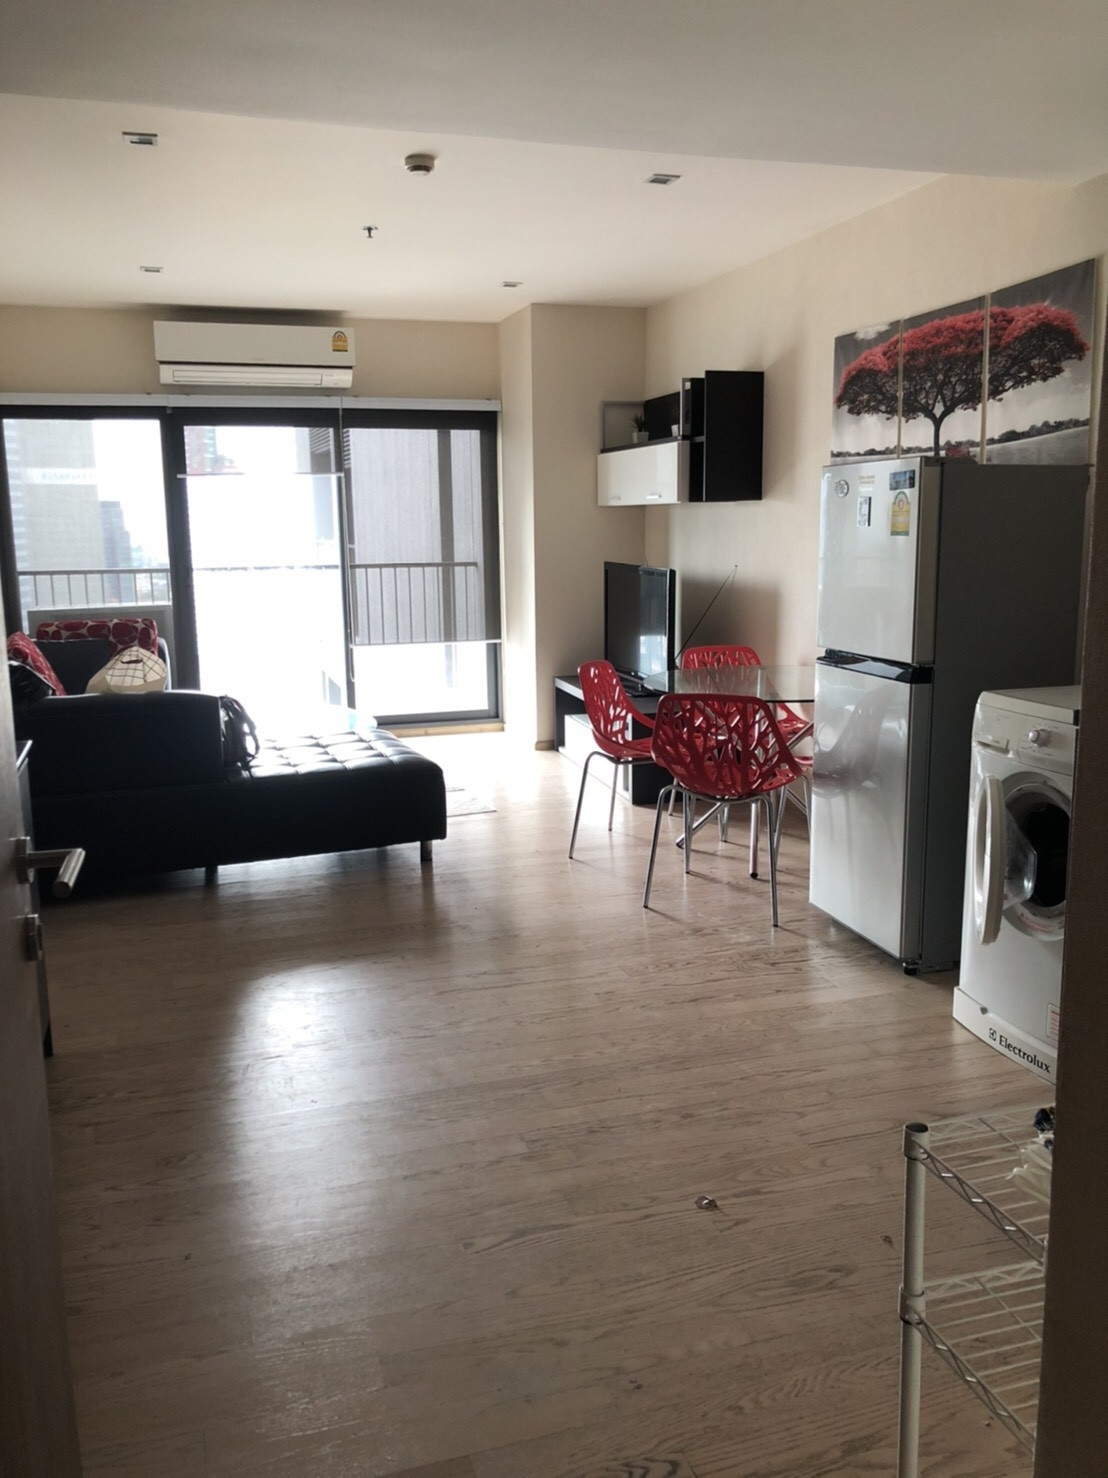 LTH2834 – Noble Remix FOR RENT 2 beds 2 baths size 85 Sq.M. Nearby BTS Thonglor station ONLY 45k/Month